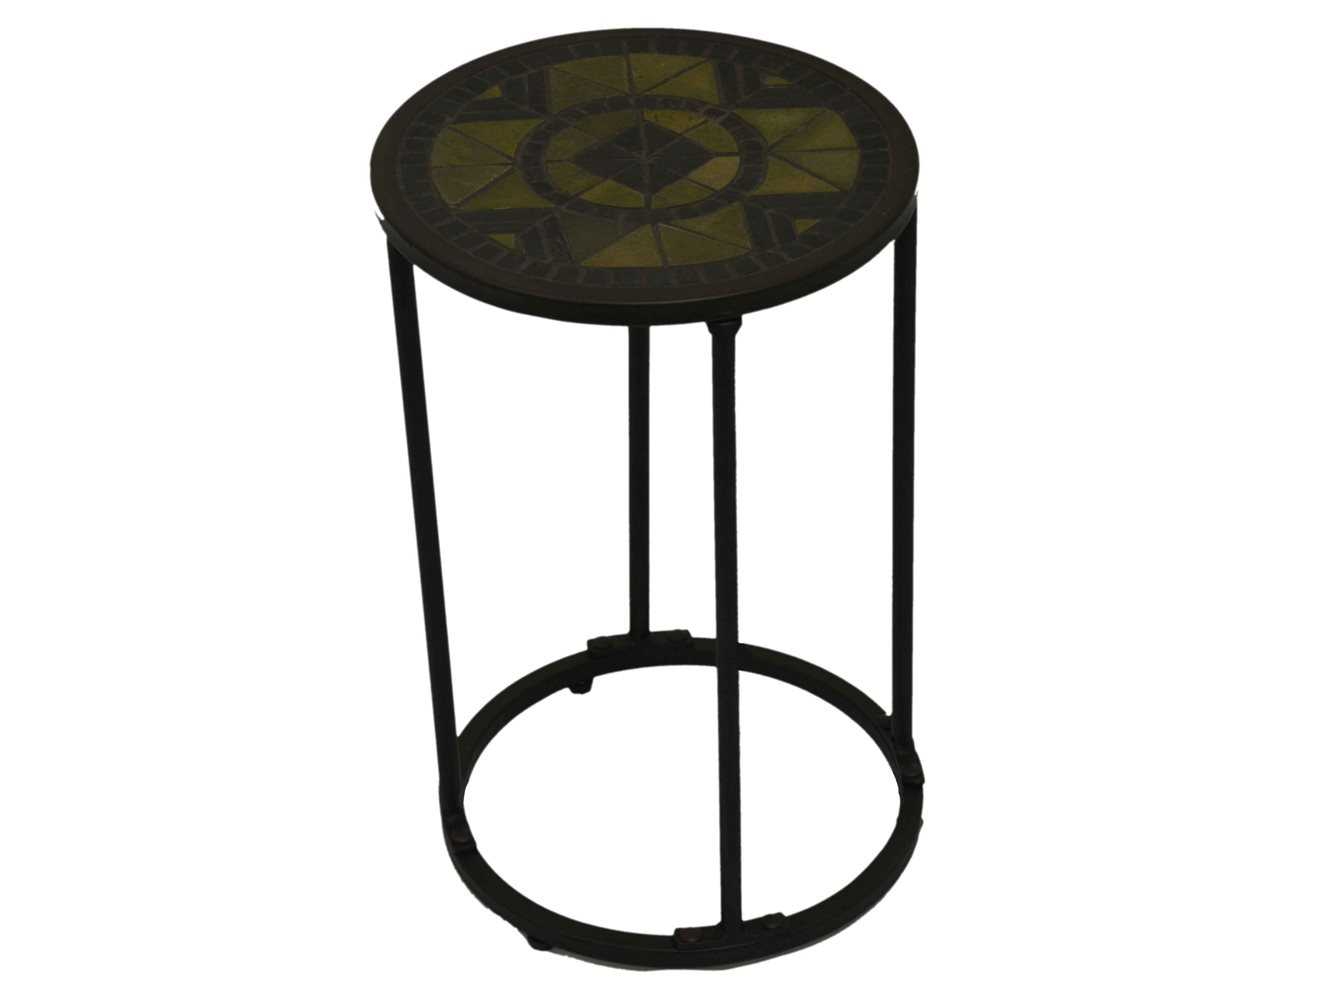 paragon casual odell wrought iron 12 round flora accent